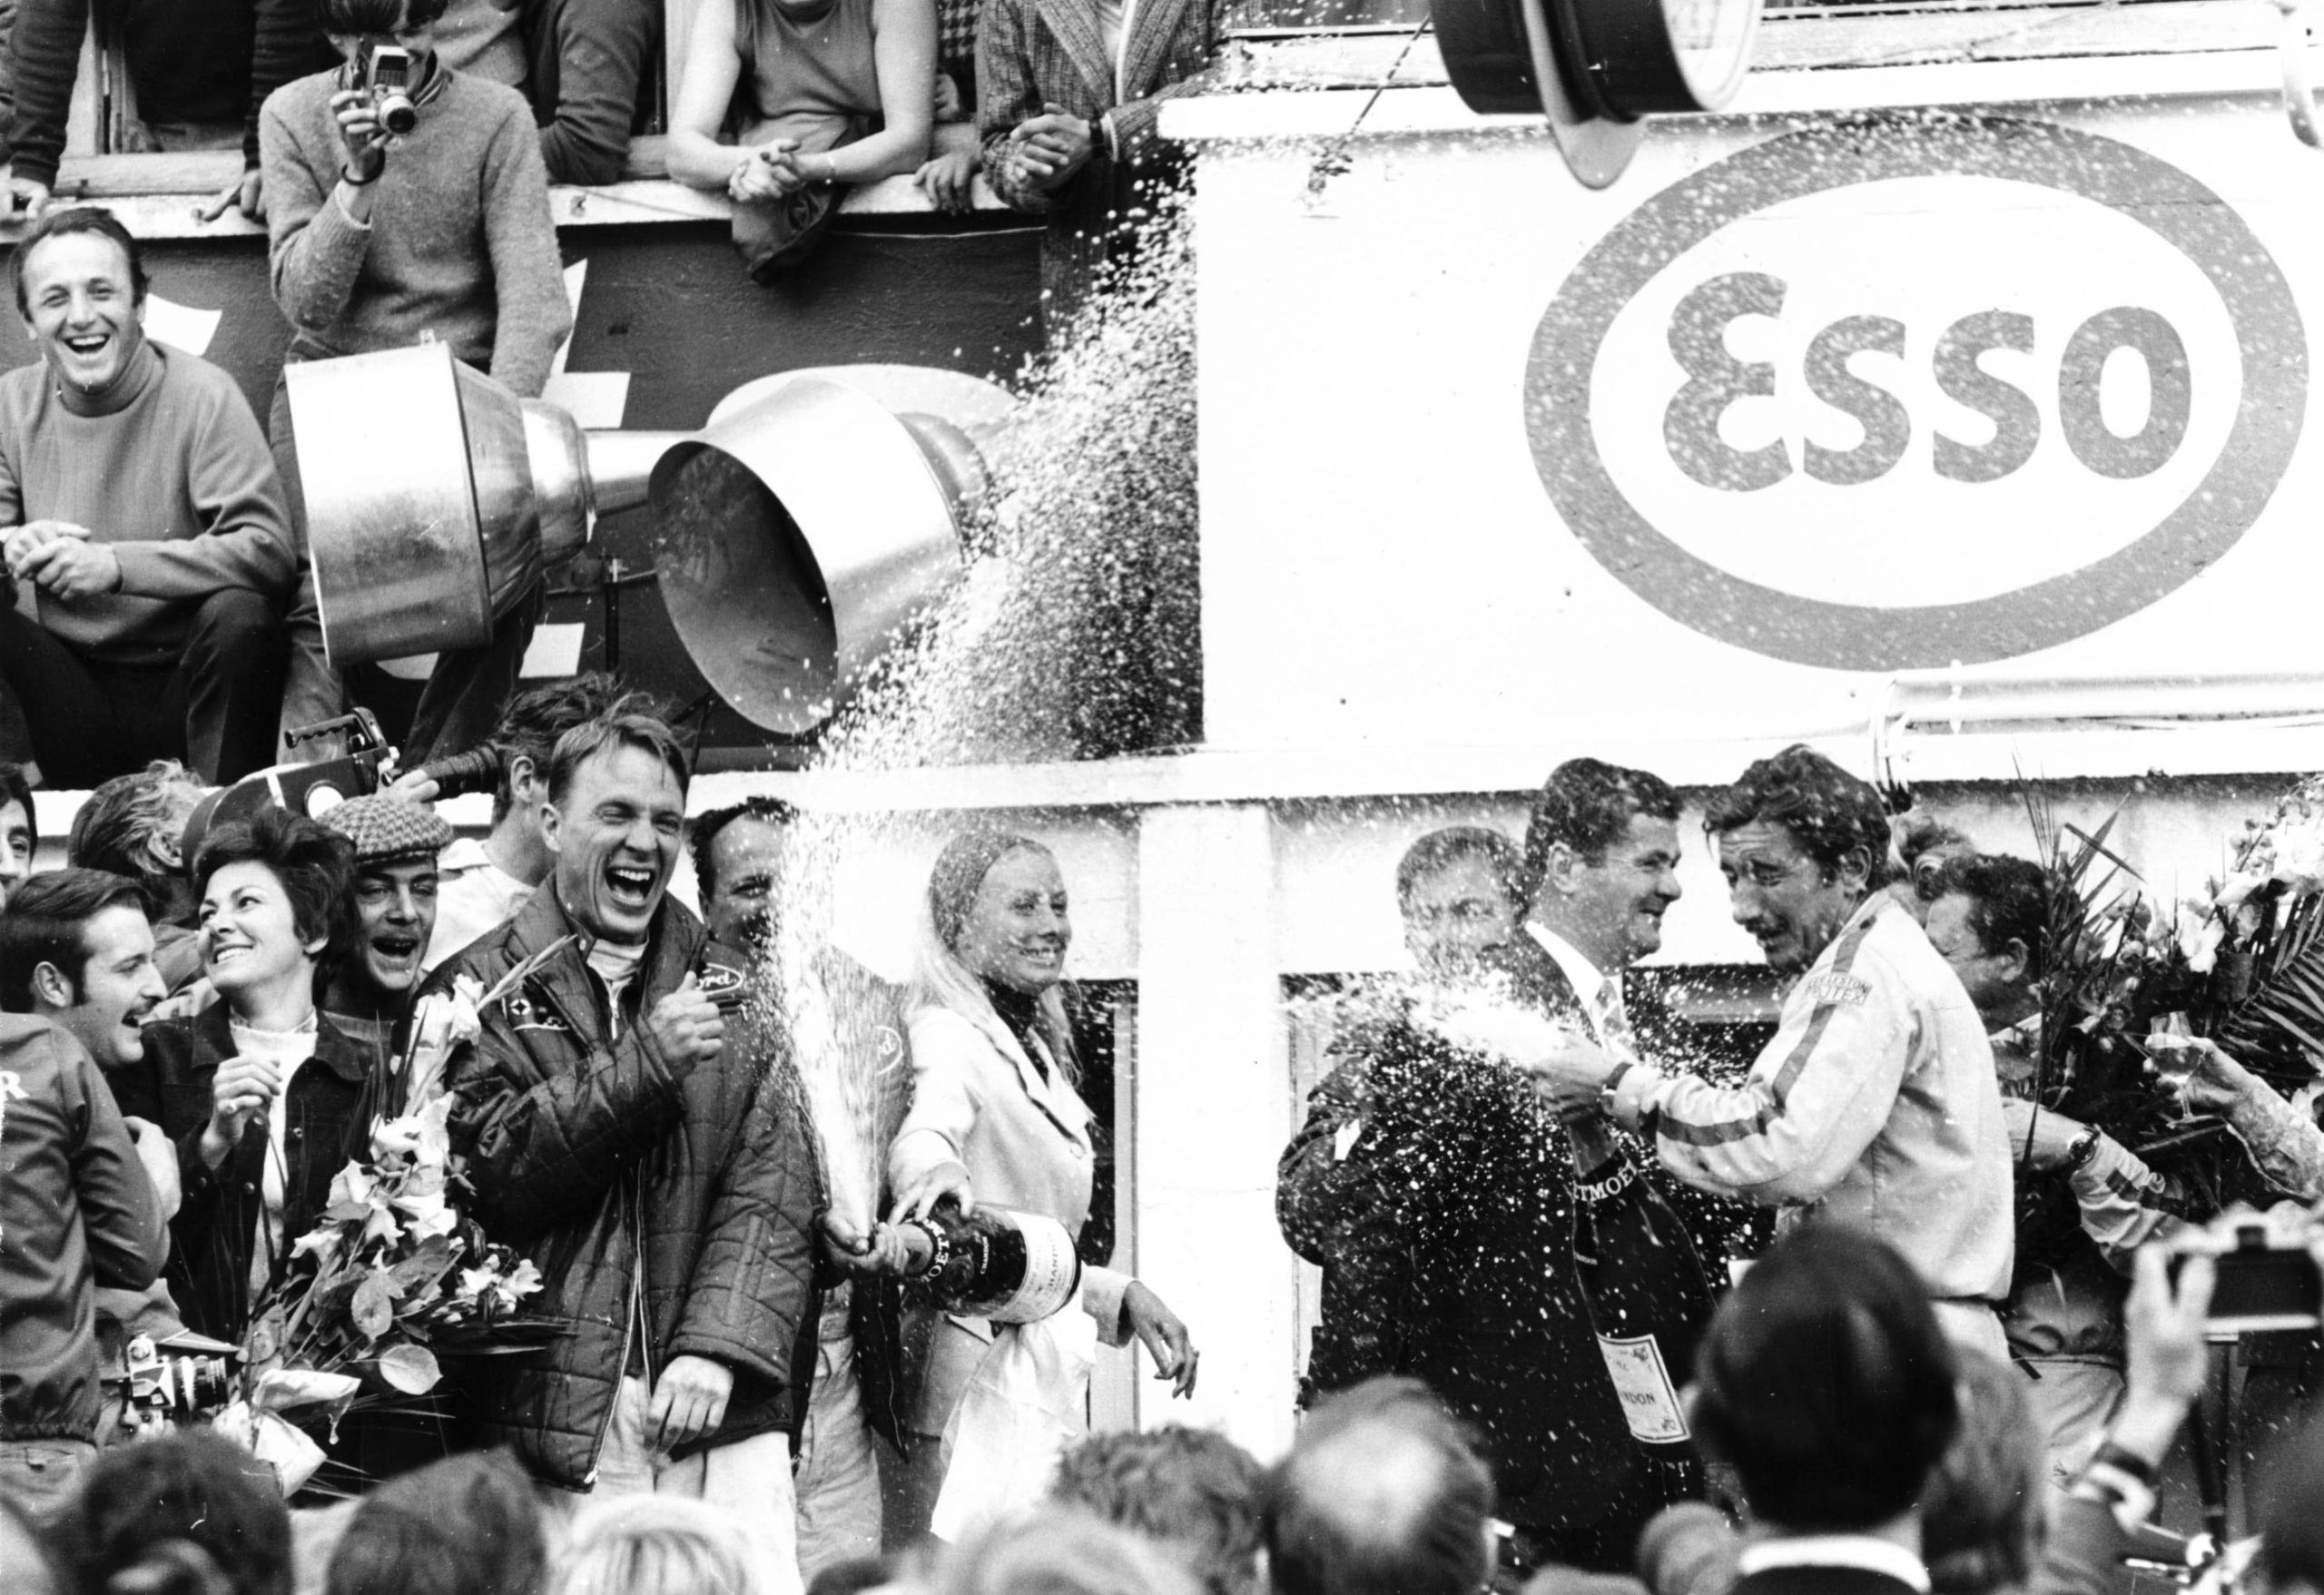 From the Archive: Two Argentine GPs, Foyt and more